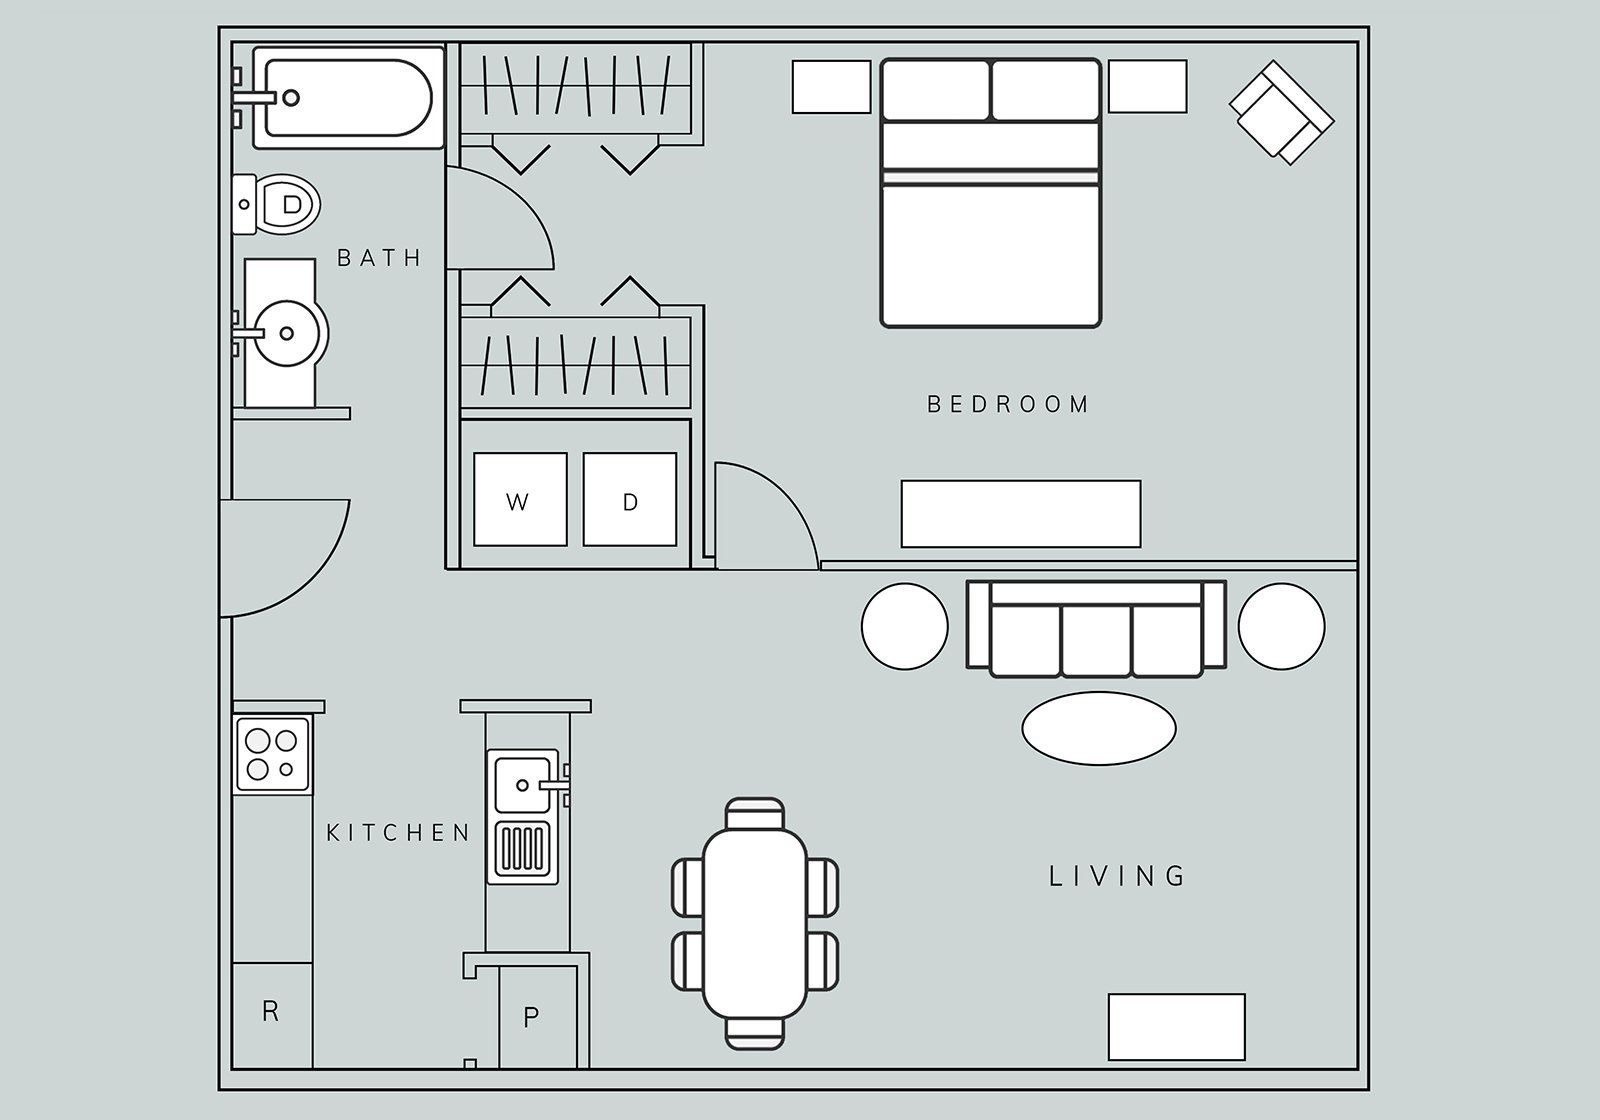 Floor Plans - Brasstown Manor Senior Living